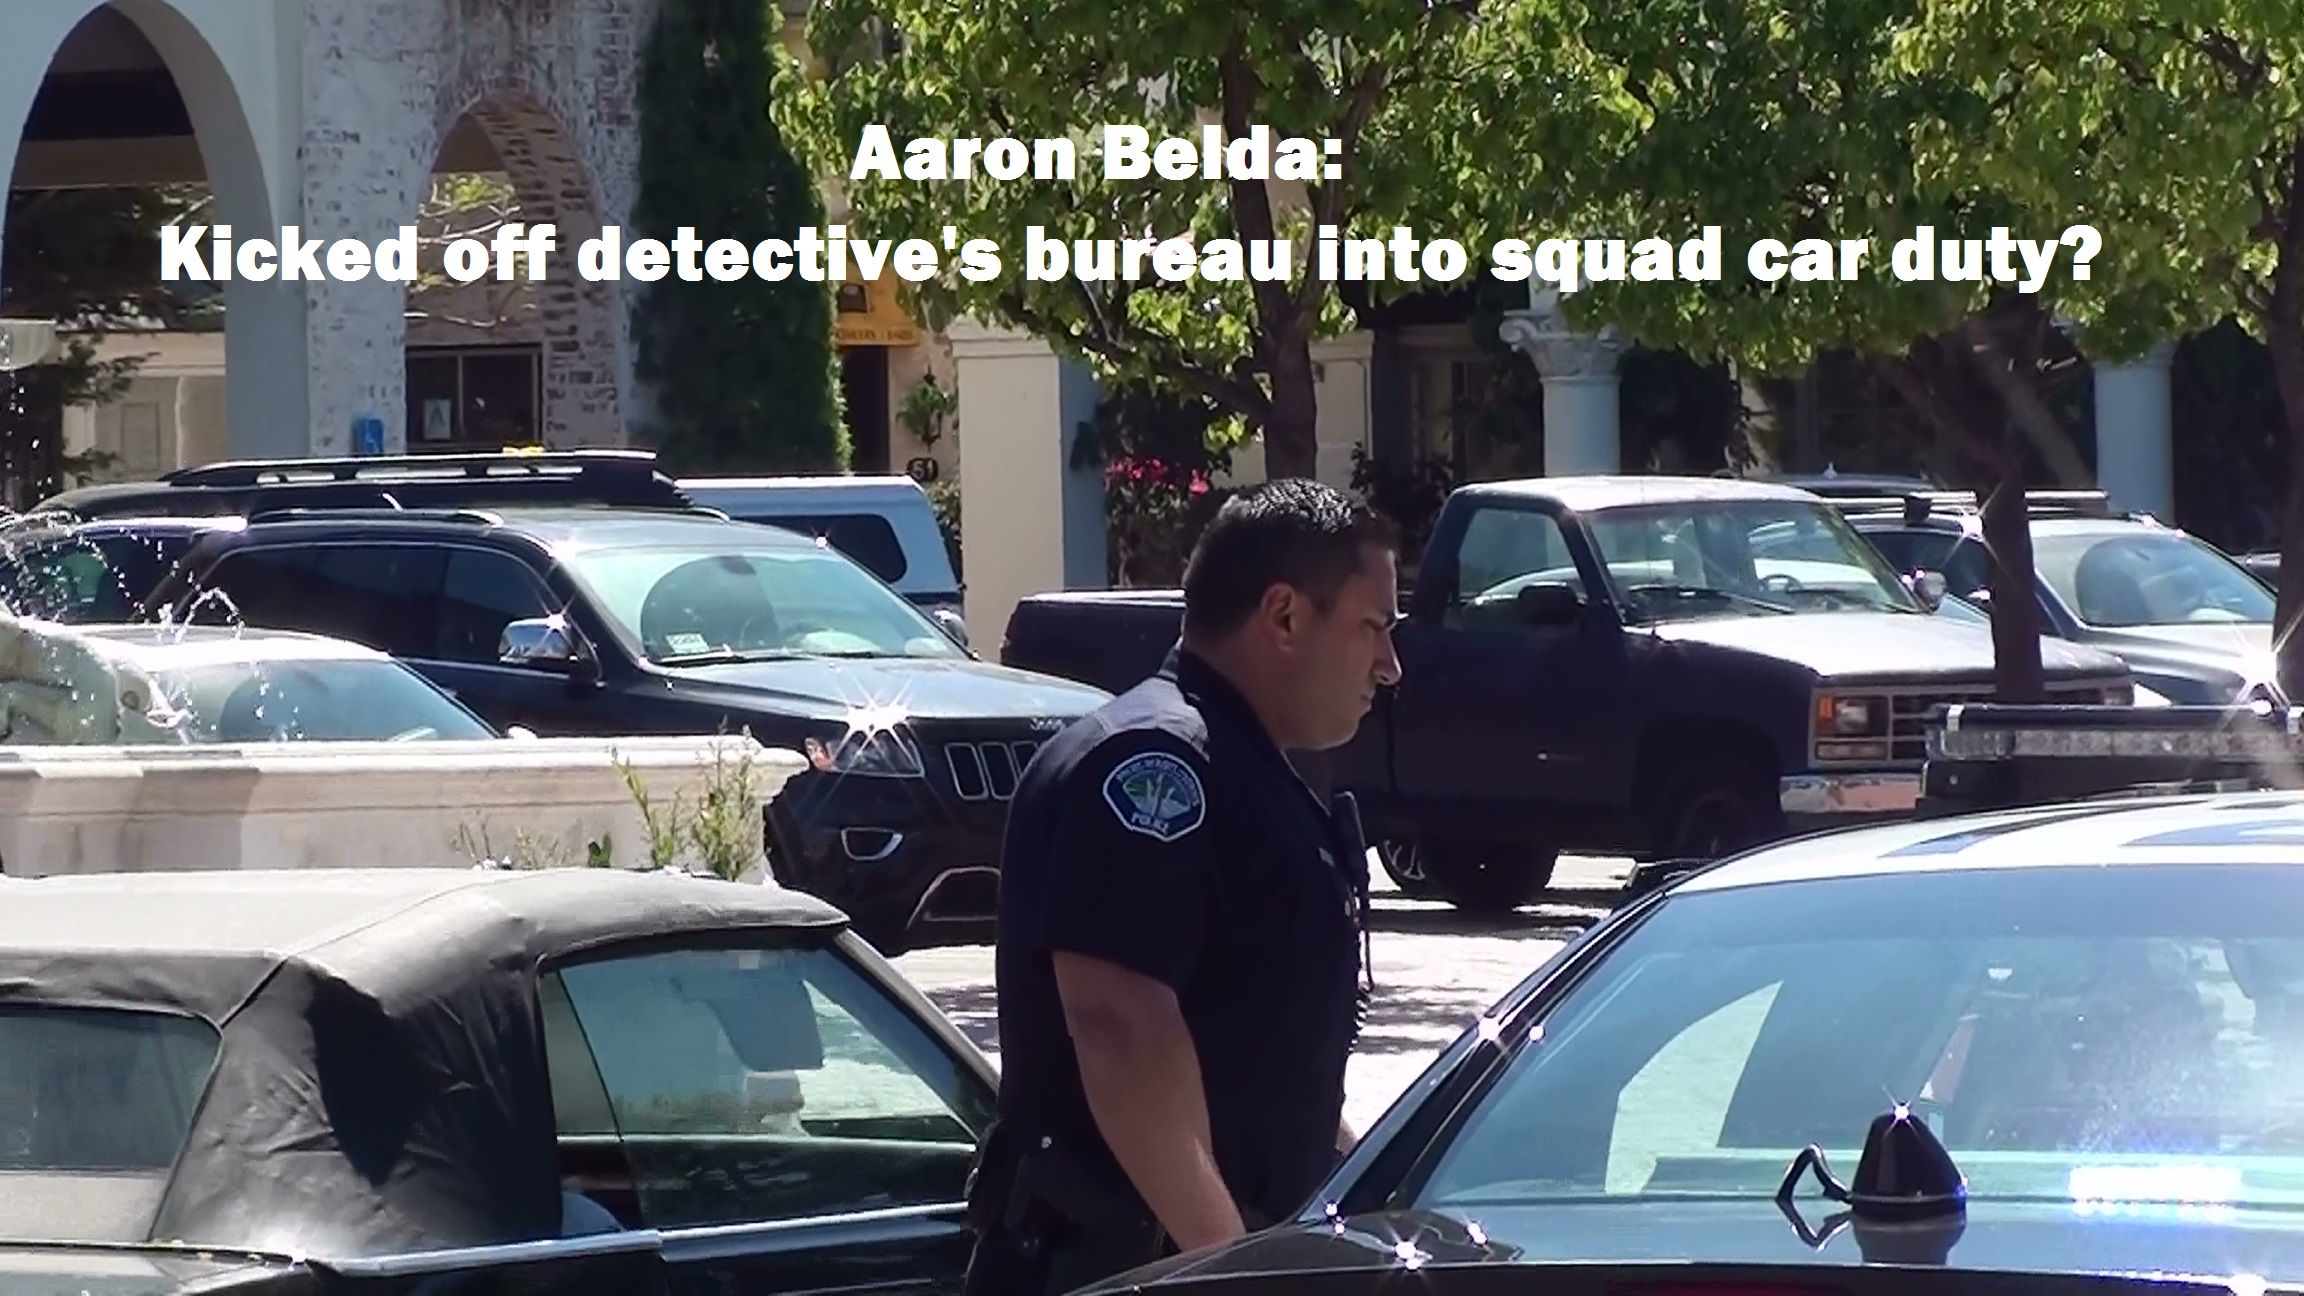 ALB PVE Malaga Cove Plaza Entering Car 03-27-2015 - Captioned